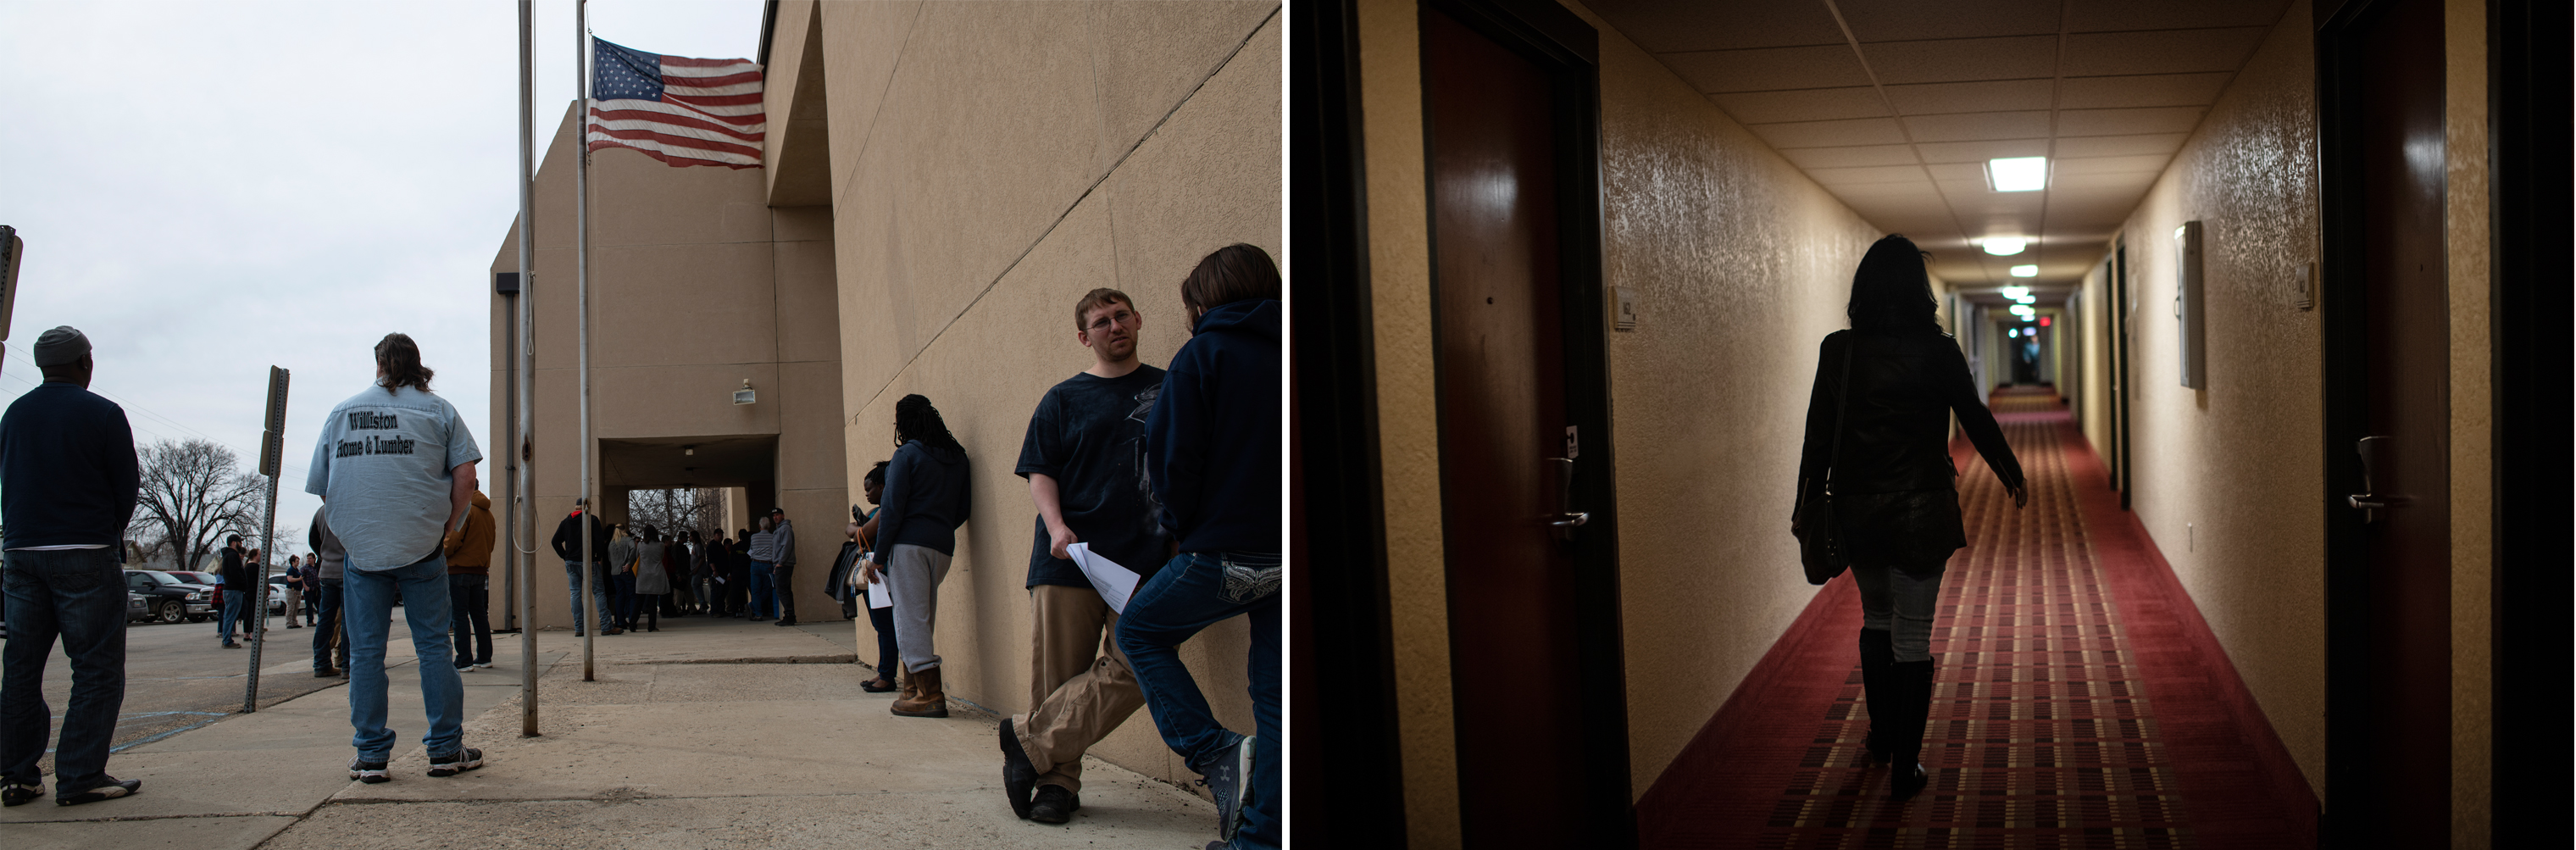 Left: People wait for the doors to open for at a job fair in Williston, North Dakota, April 23, 2018.; Right: Lazenko tours hotels that were at the heart of the trafficking industry during the oil boom, April 24, 2018.